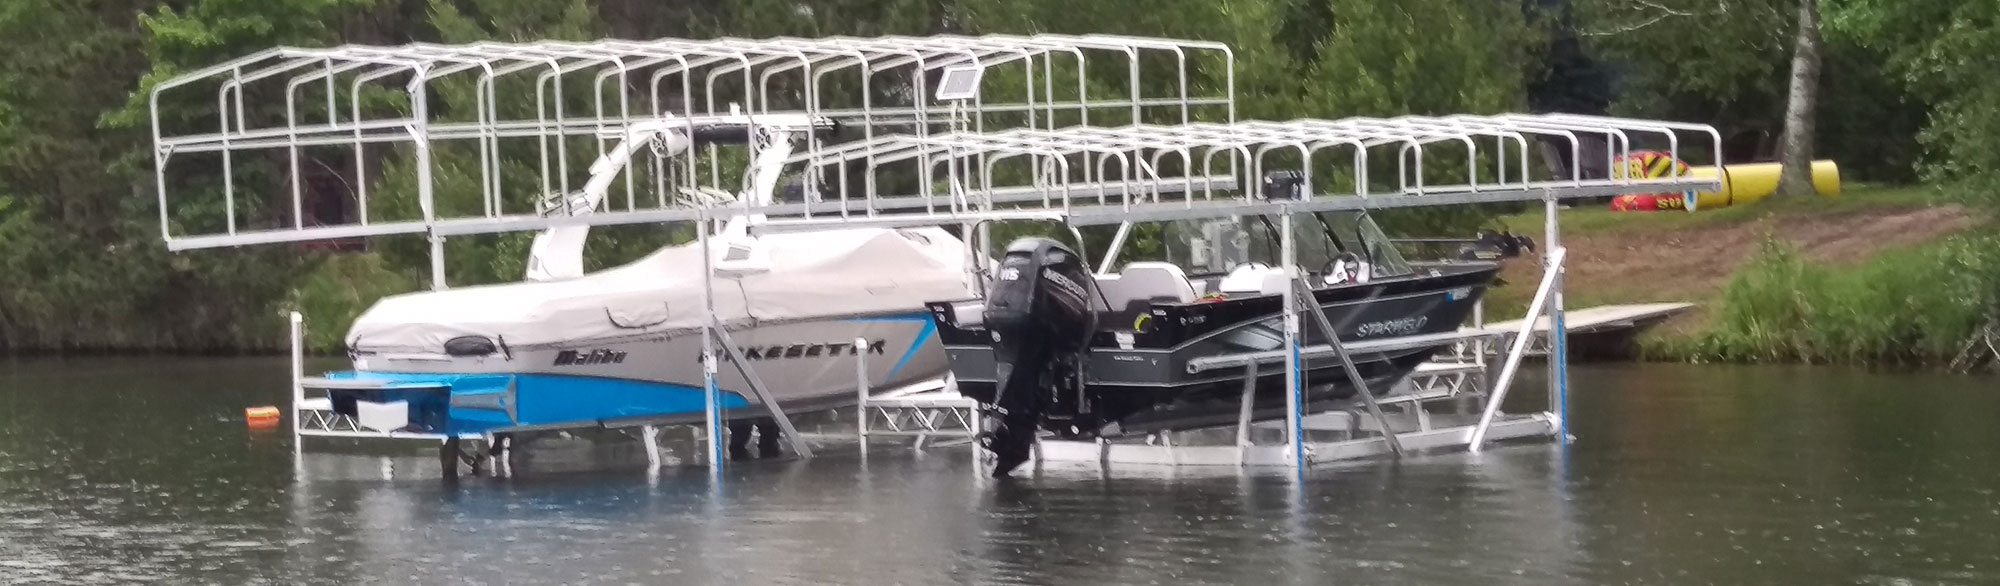 Boat Dock Sales in Minnesota